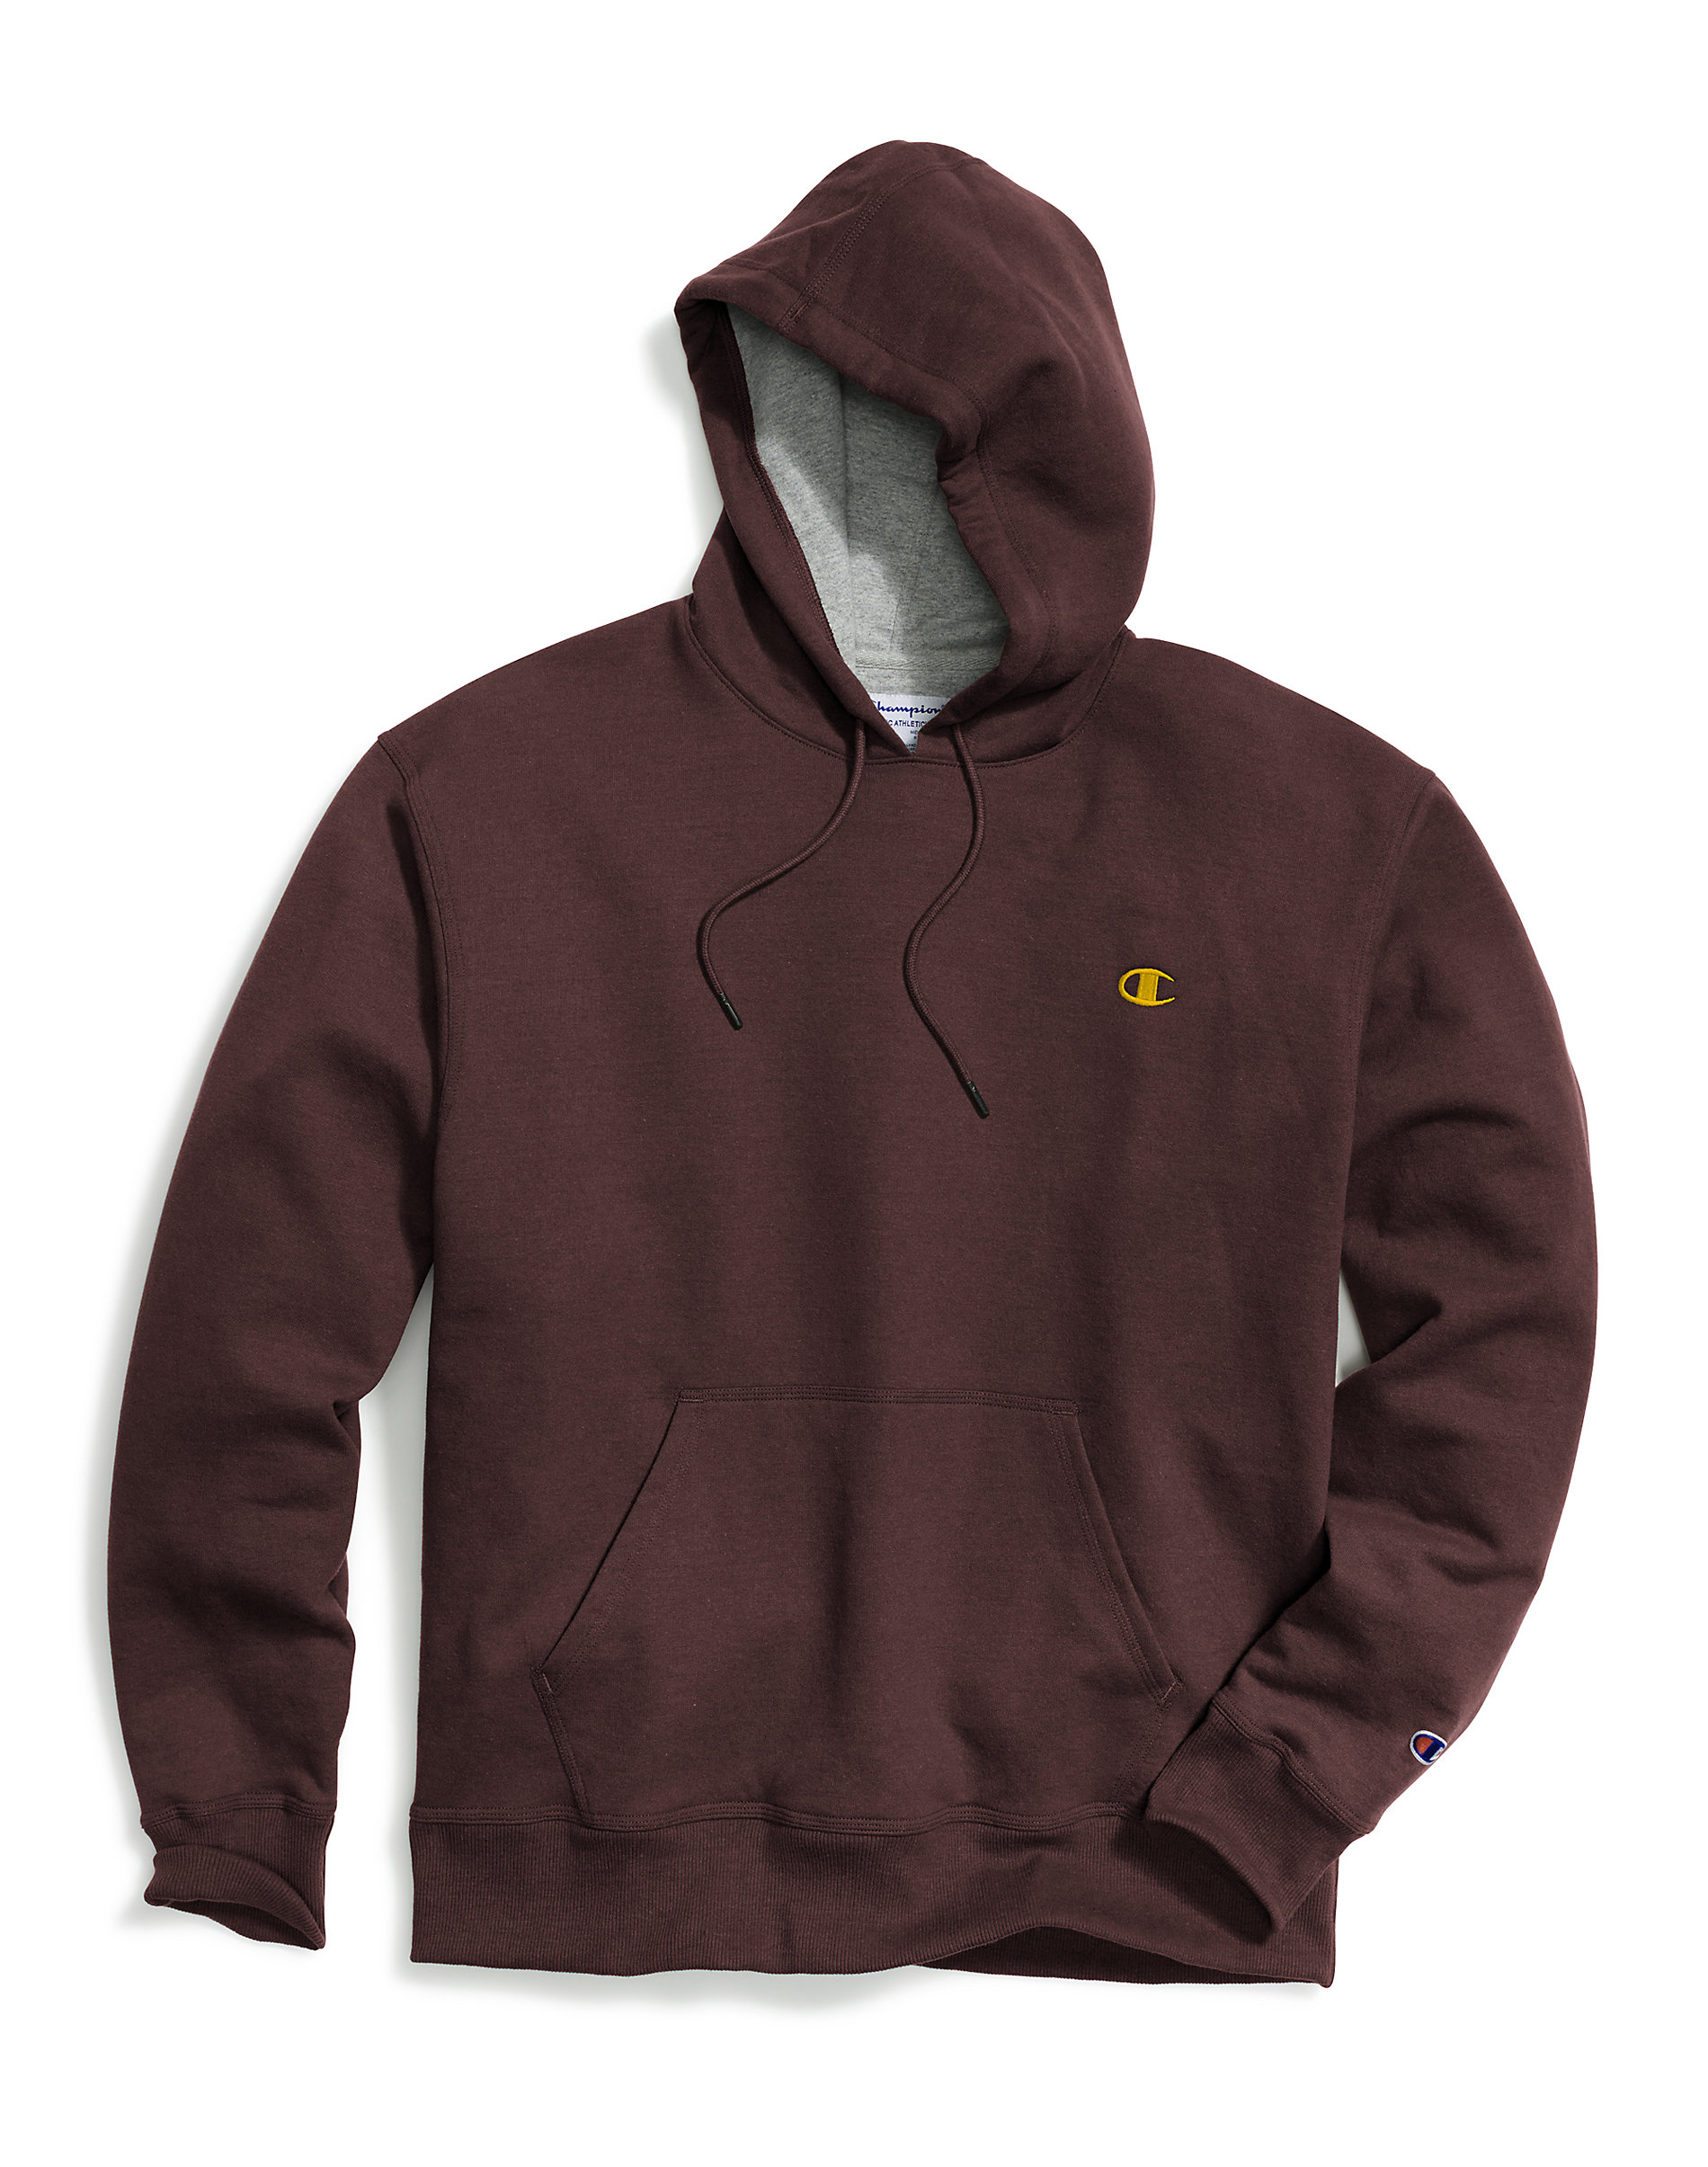 Champion-Mens-Hoodie-Sweatshirt-Fleece-Powerblend-Sweats-Pullover-Front-Pouch thumbnail 16